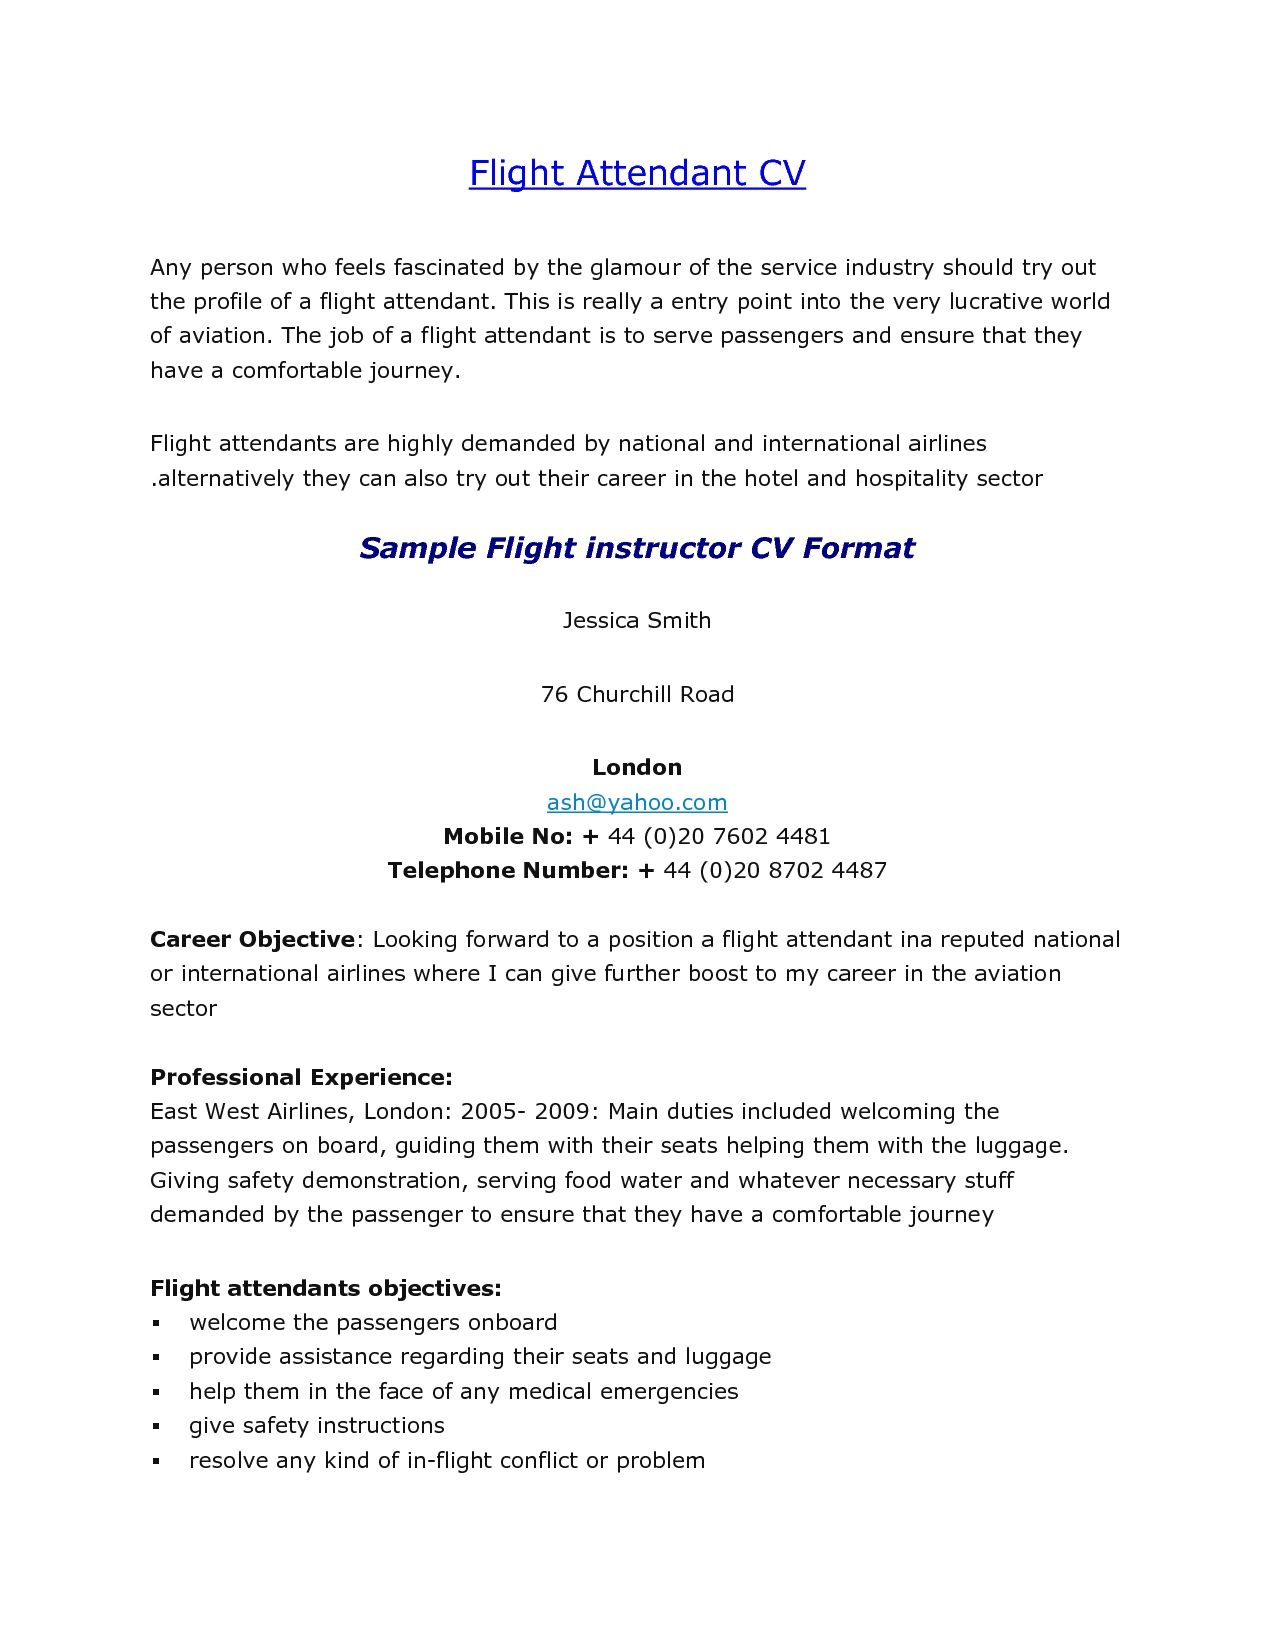 Emirates Cabin Crew Cover Letter Examples For Position With Experience